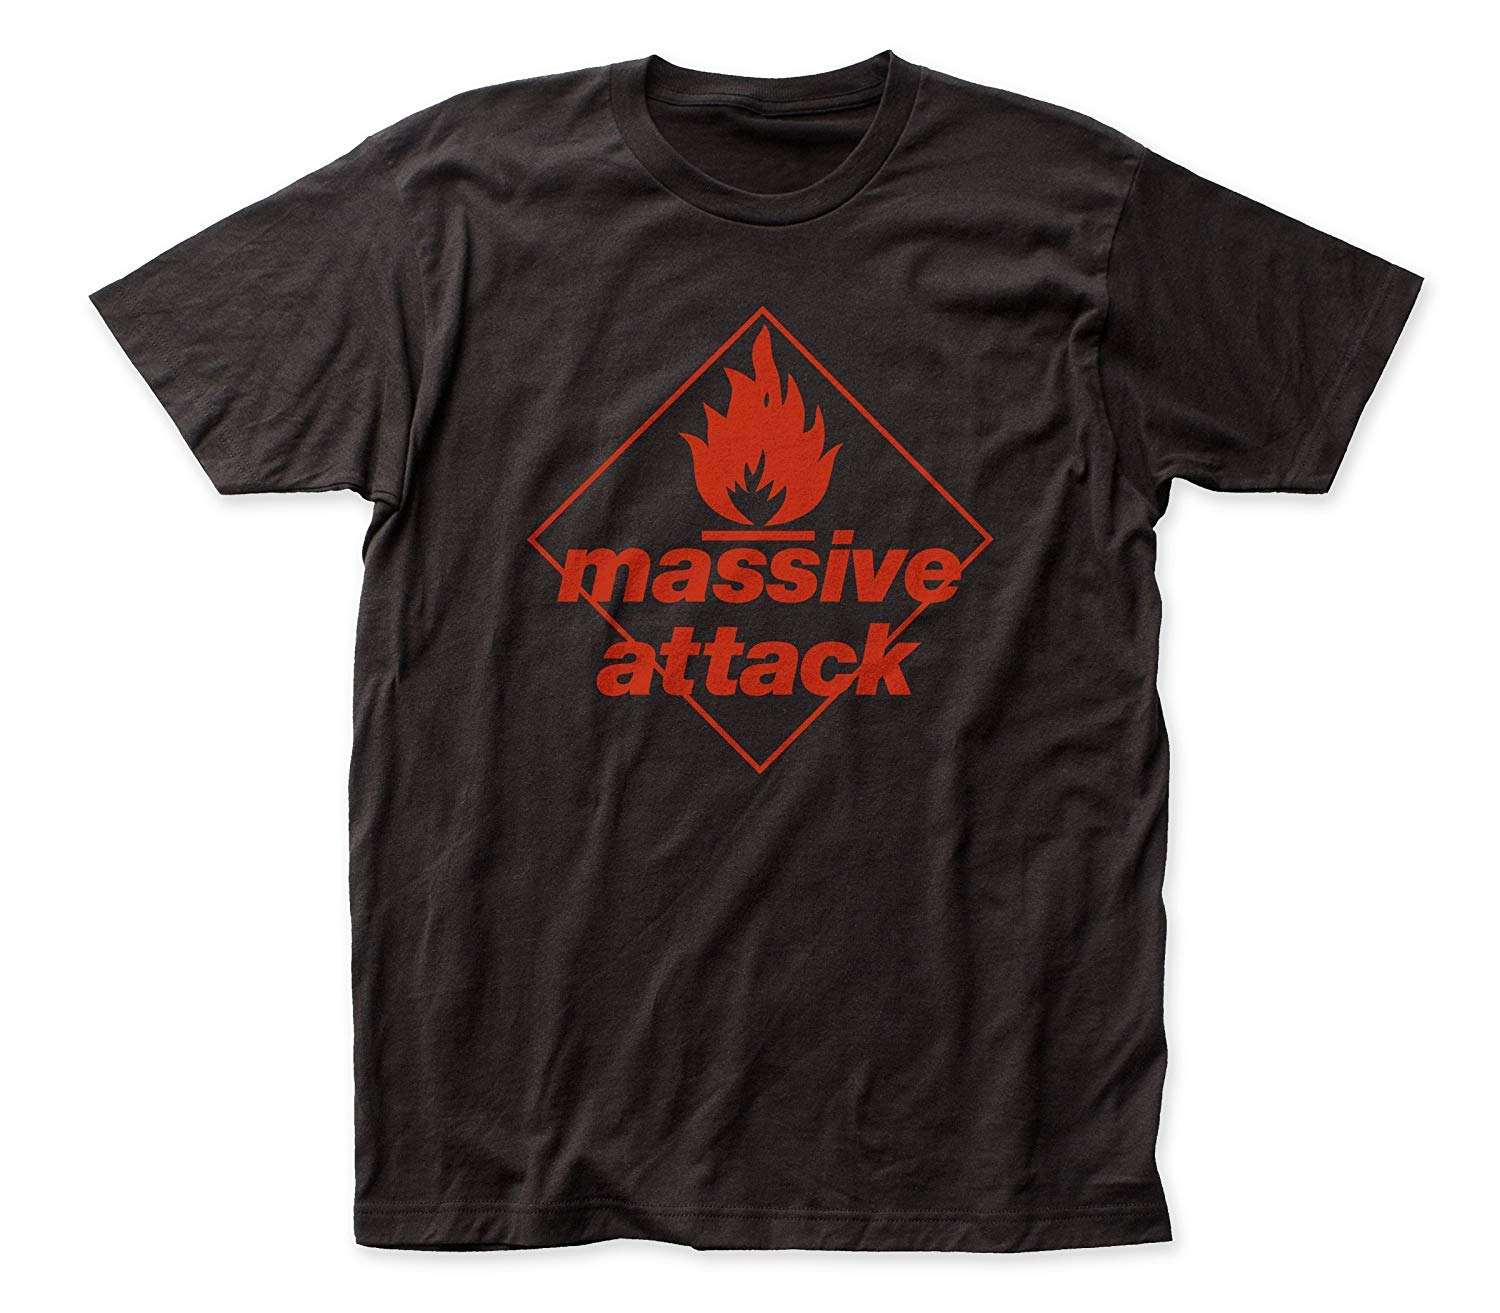 Impact Massive Attack Blue Lines Soft Fitted 30/1 Cotton Tee (Medium)